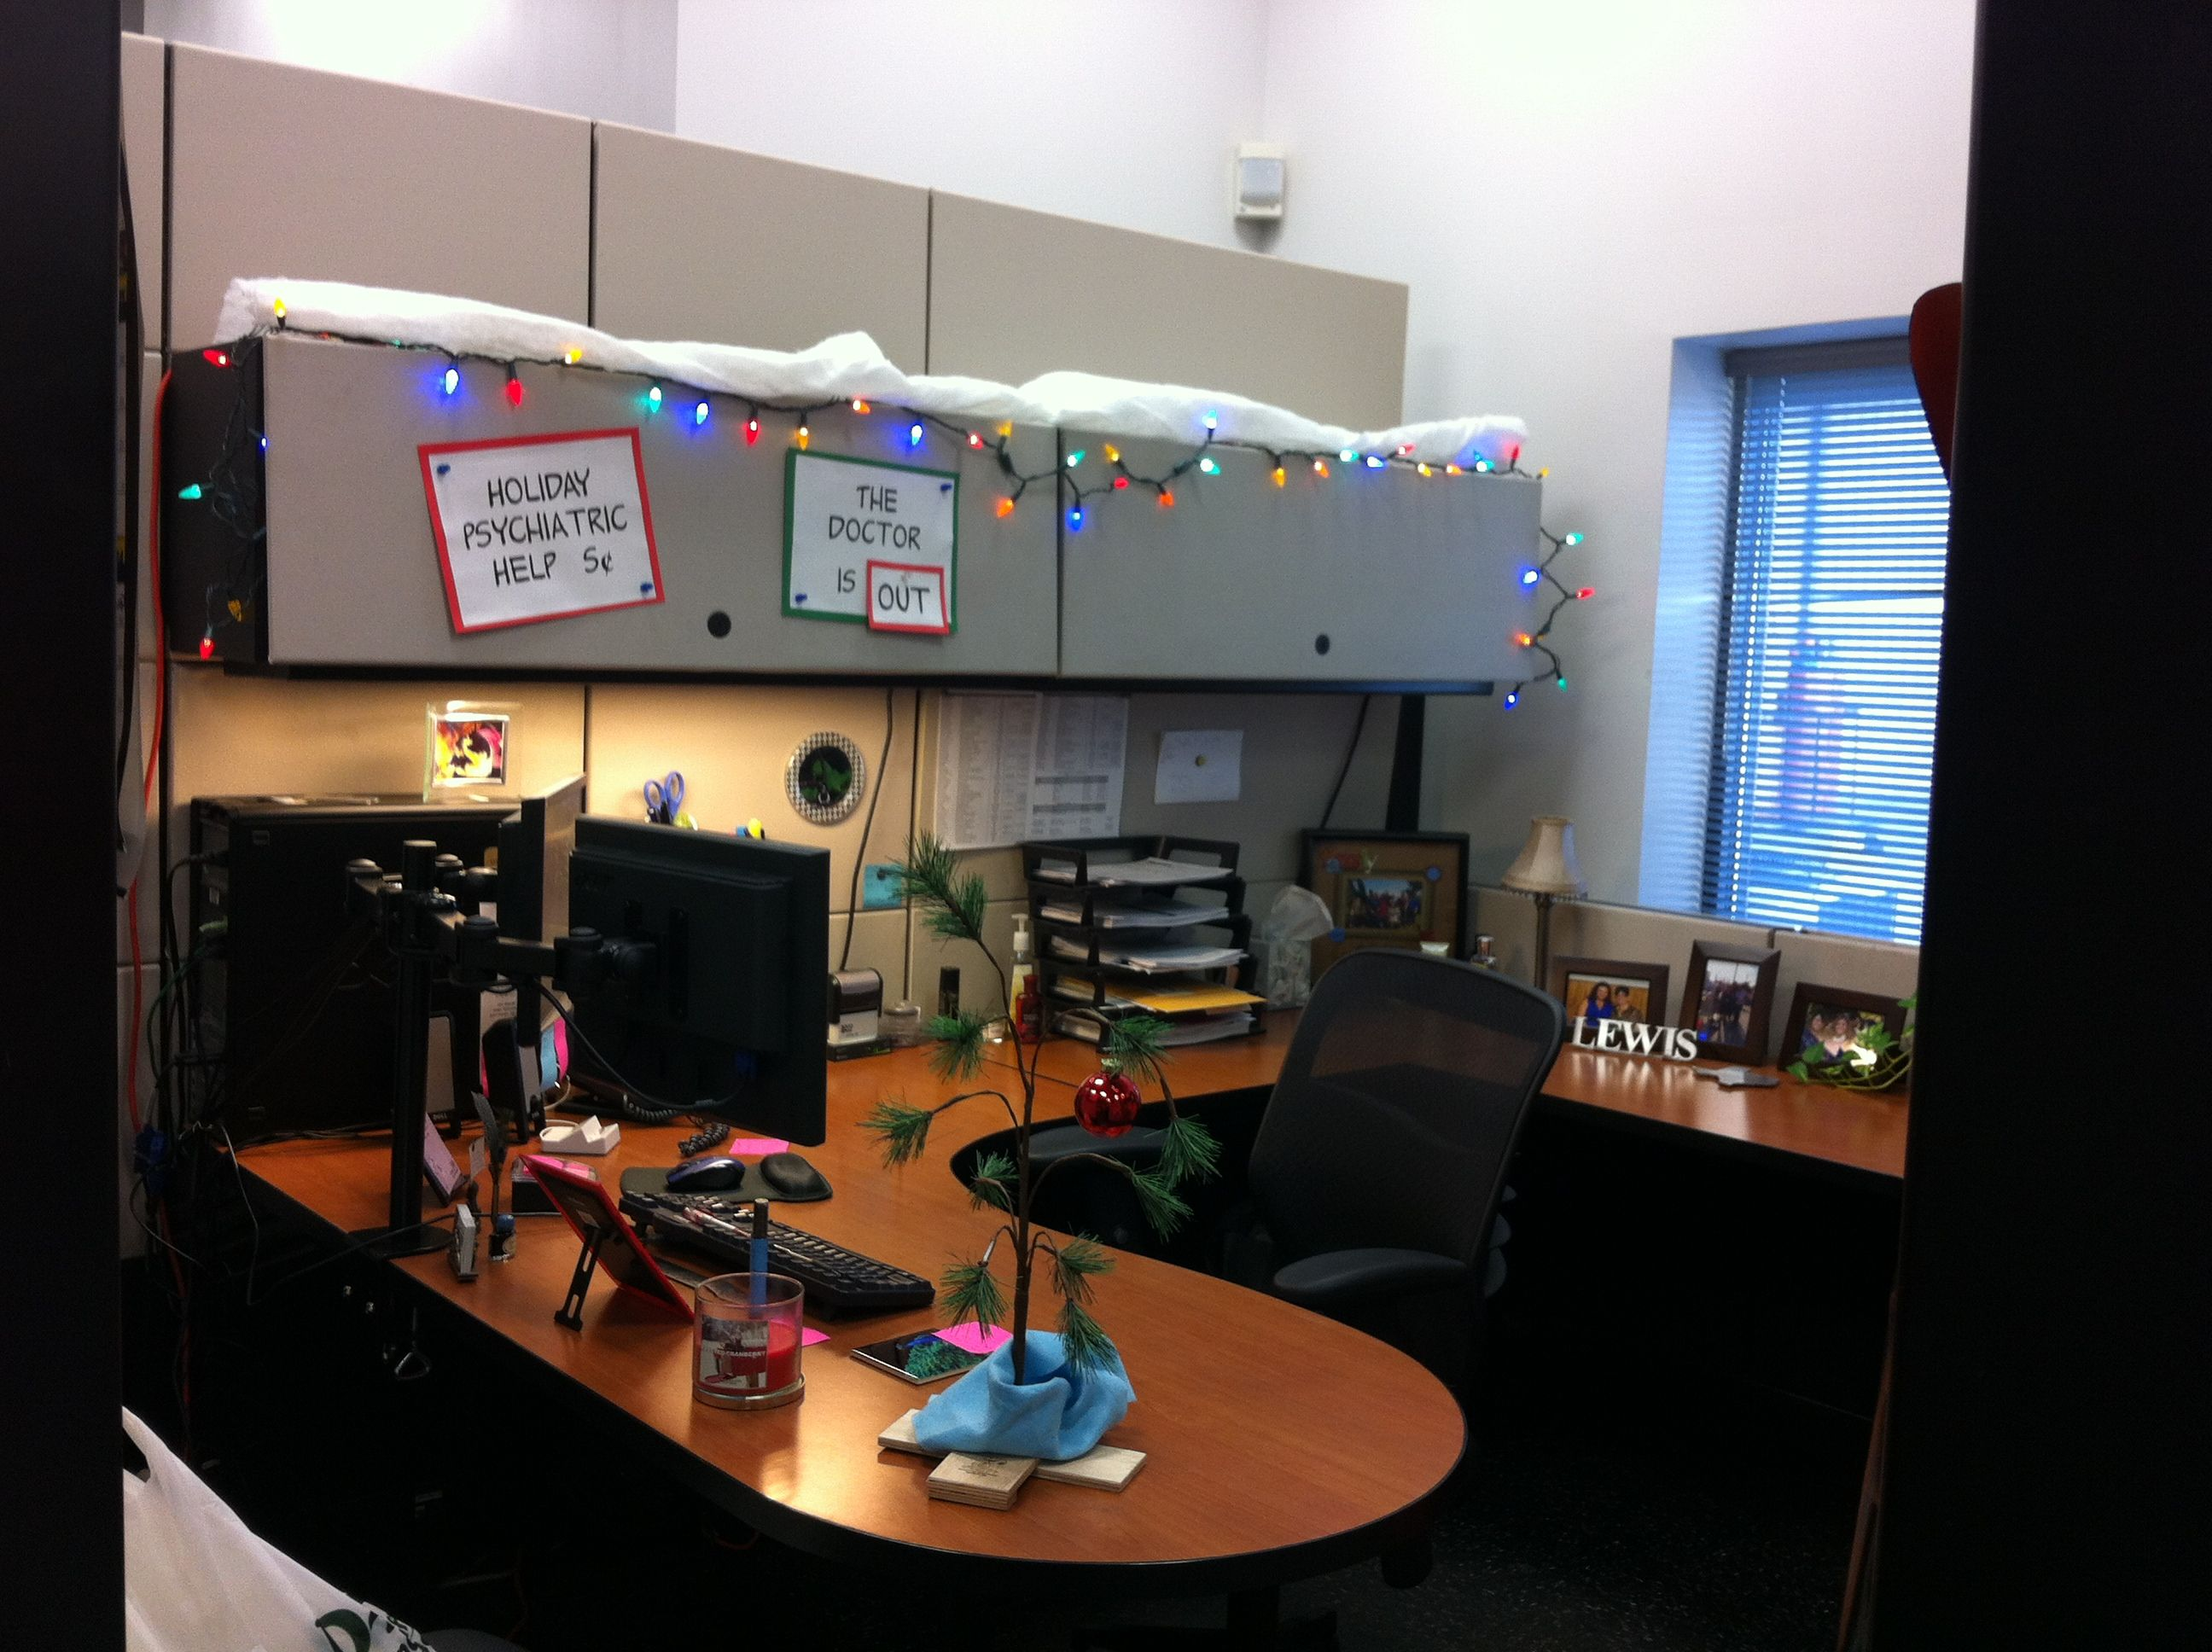 Christmas Merry Cubicle Decorating